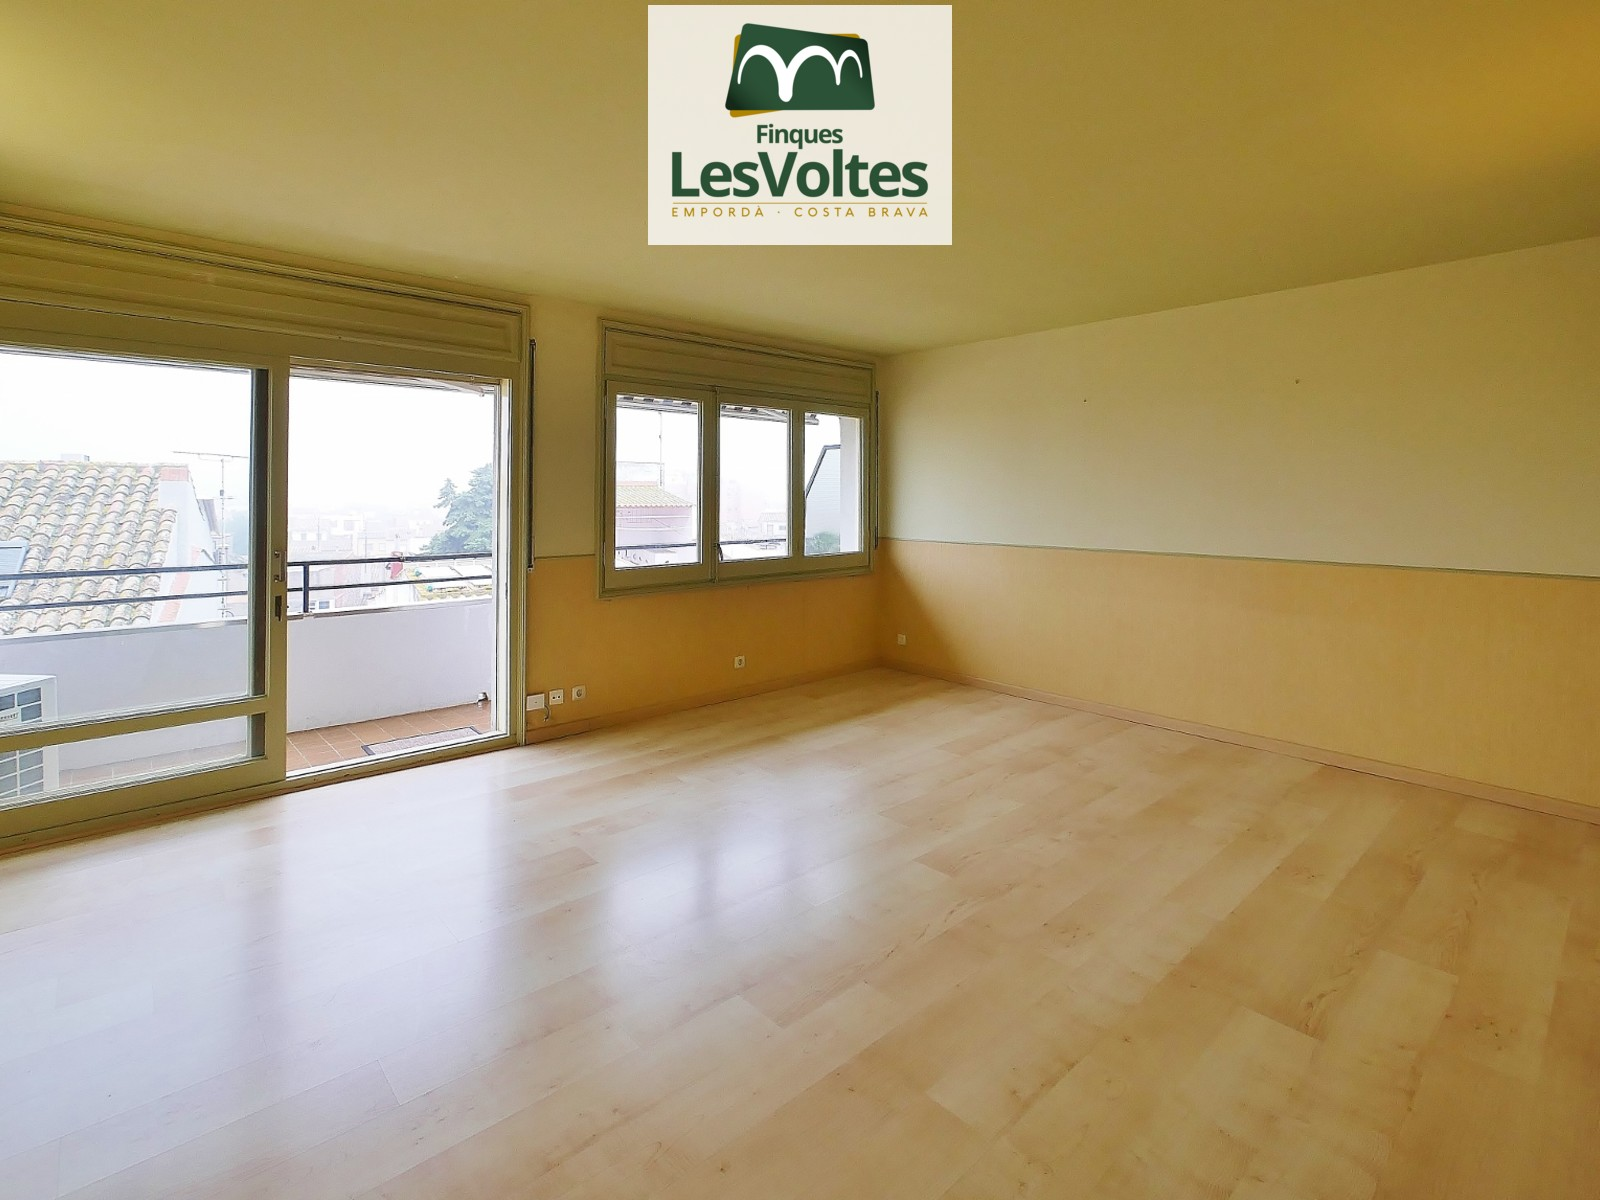 GREAT FLAT FOR RENT IN THE PEATONAL CENTER OF PALAFRUGELL. GREAT VIEWS.